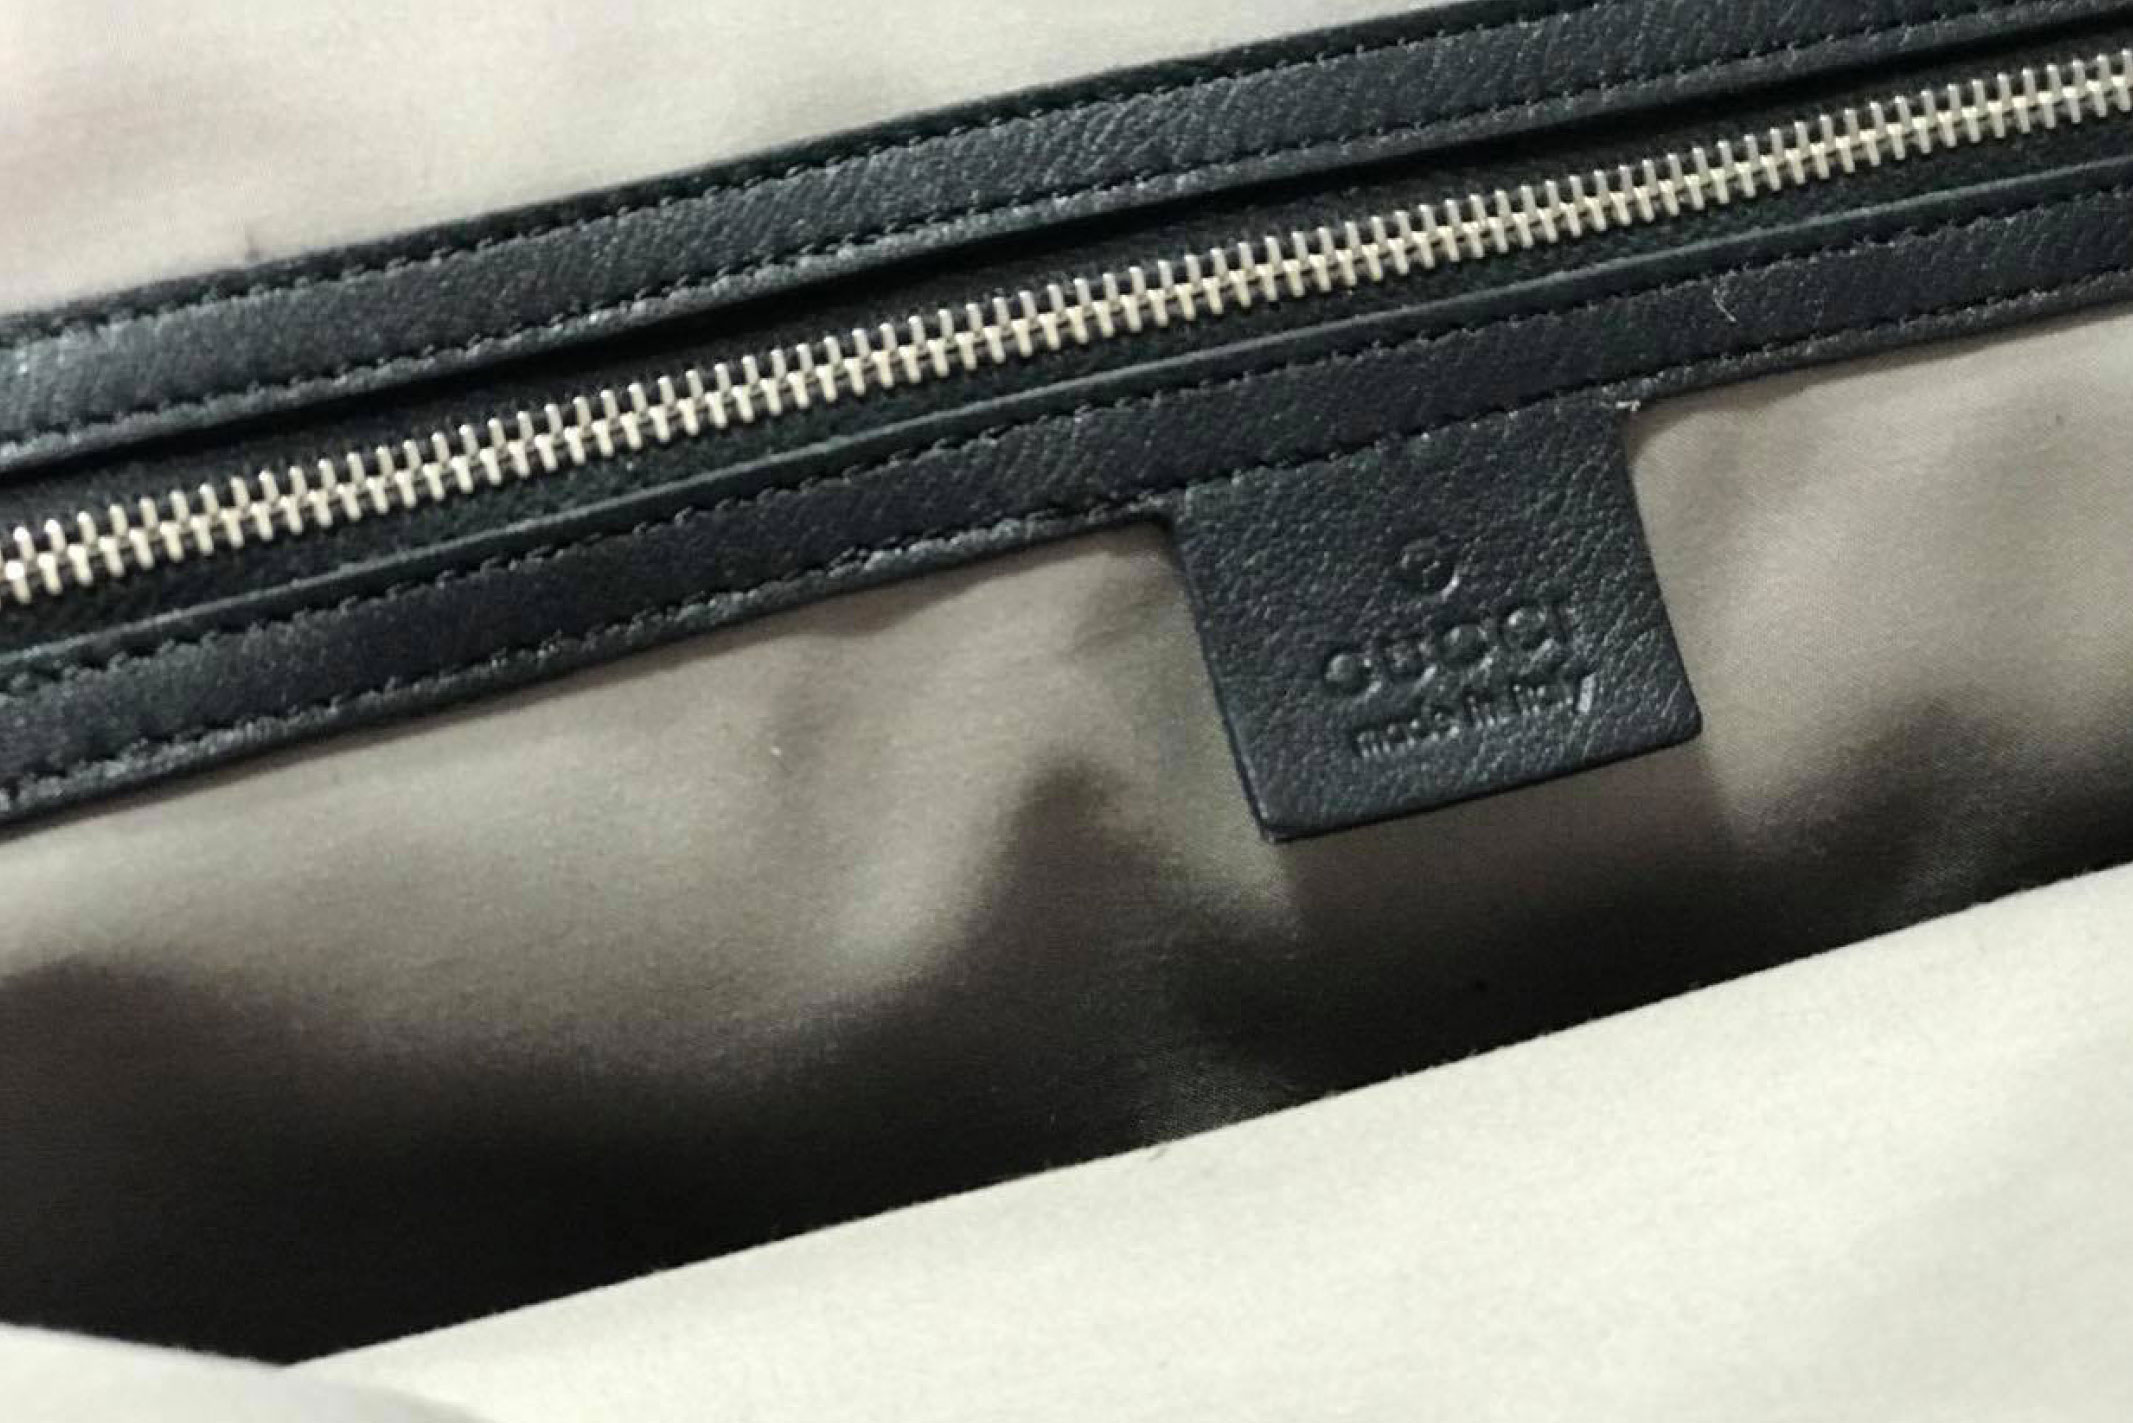 Designer handbag lining replacement